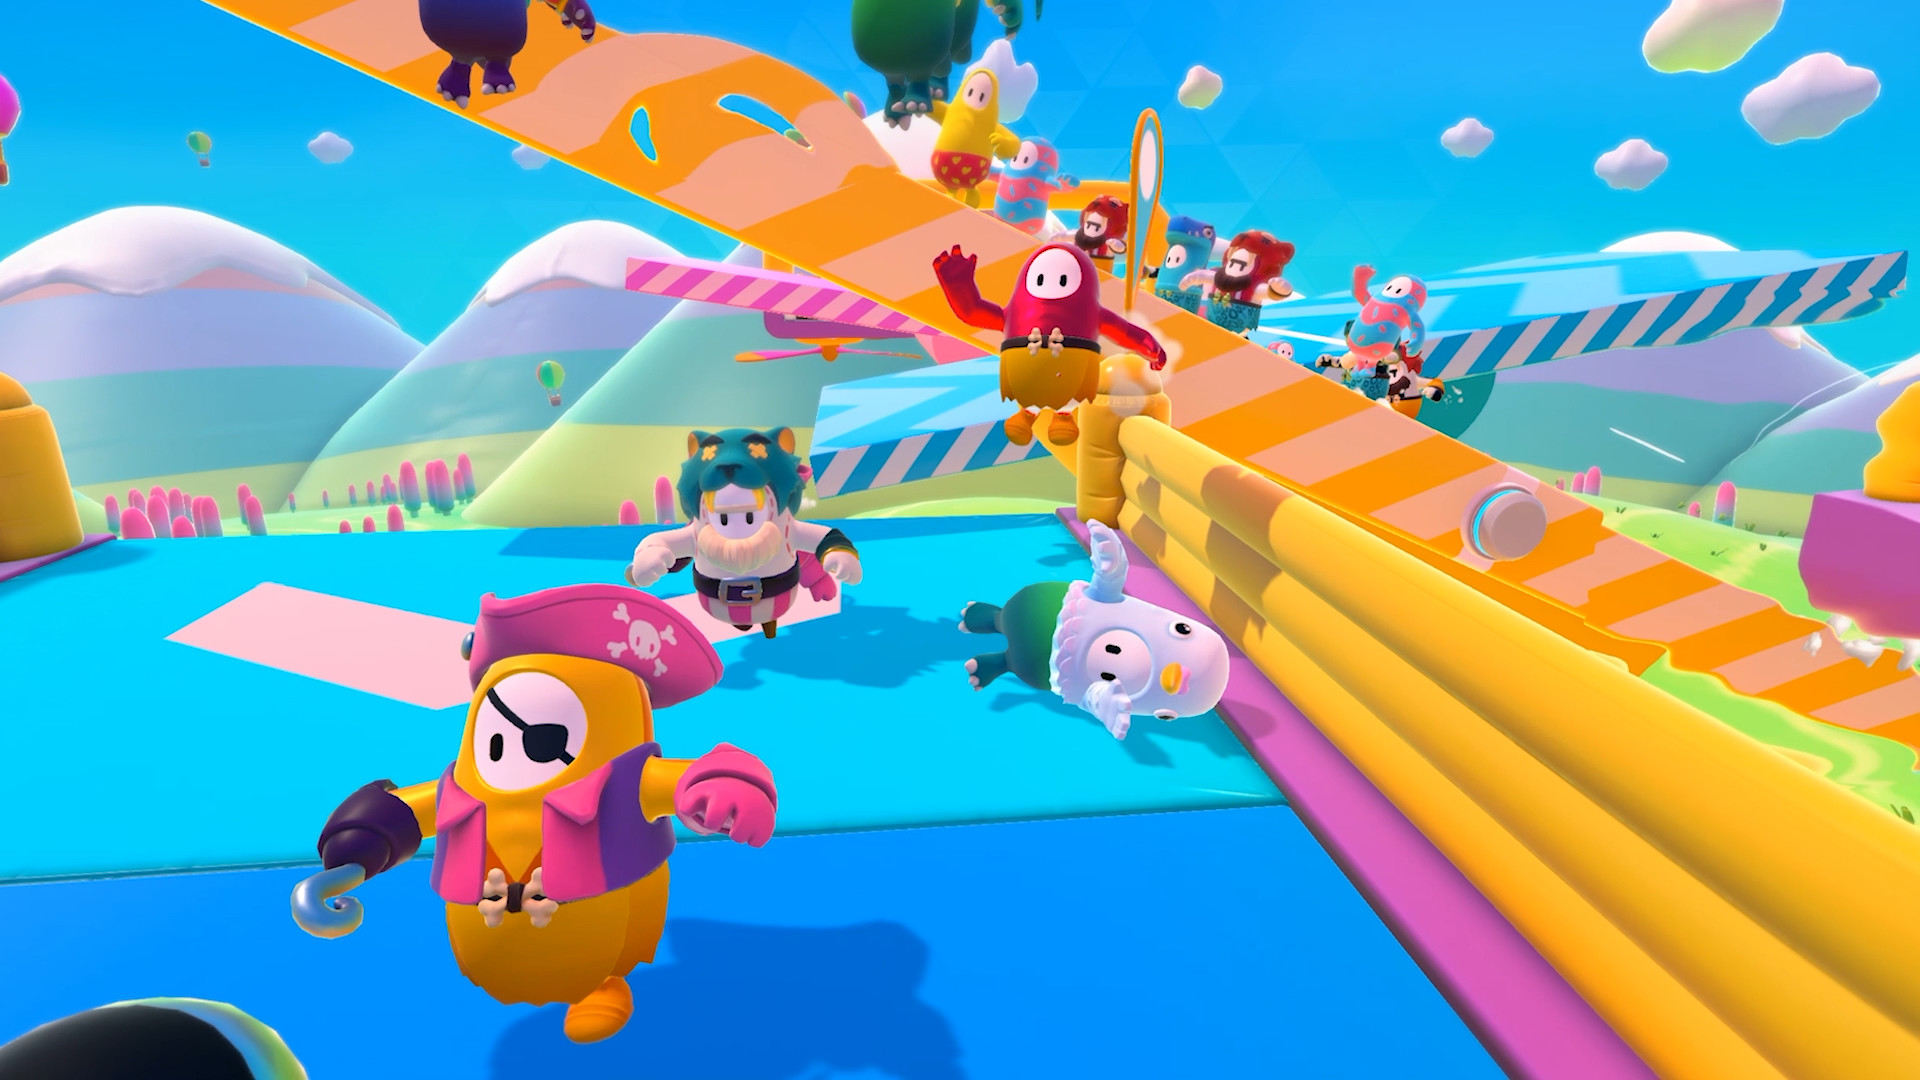 Fall Guys immediately stands out with its goofy visuals and different looking gameplay